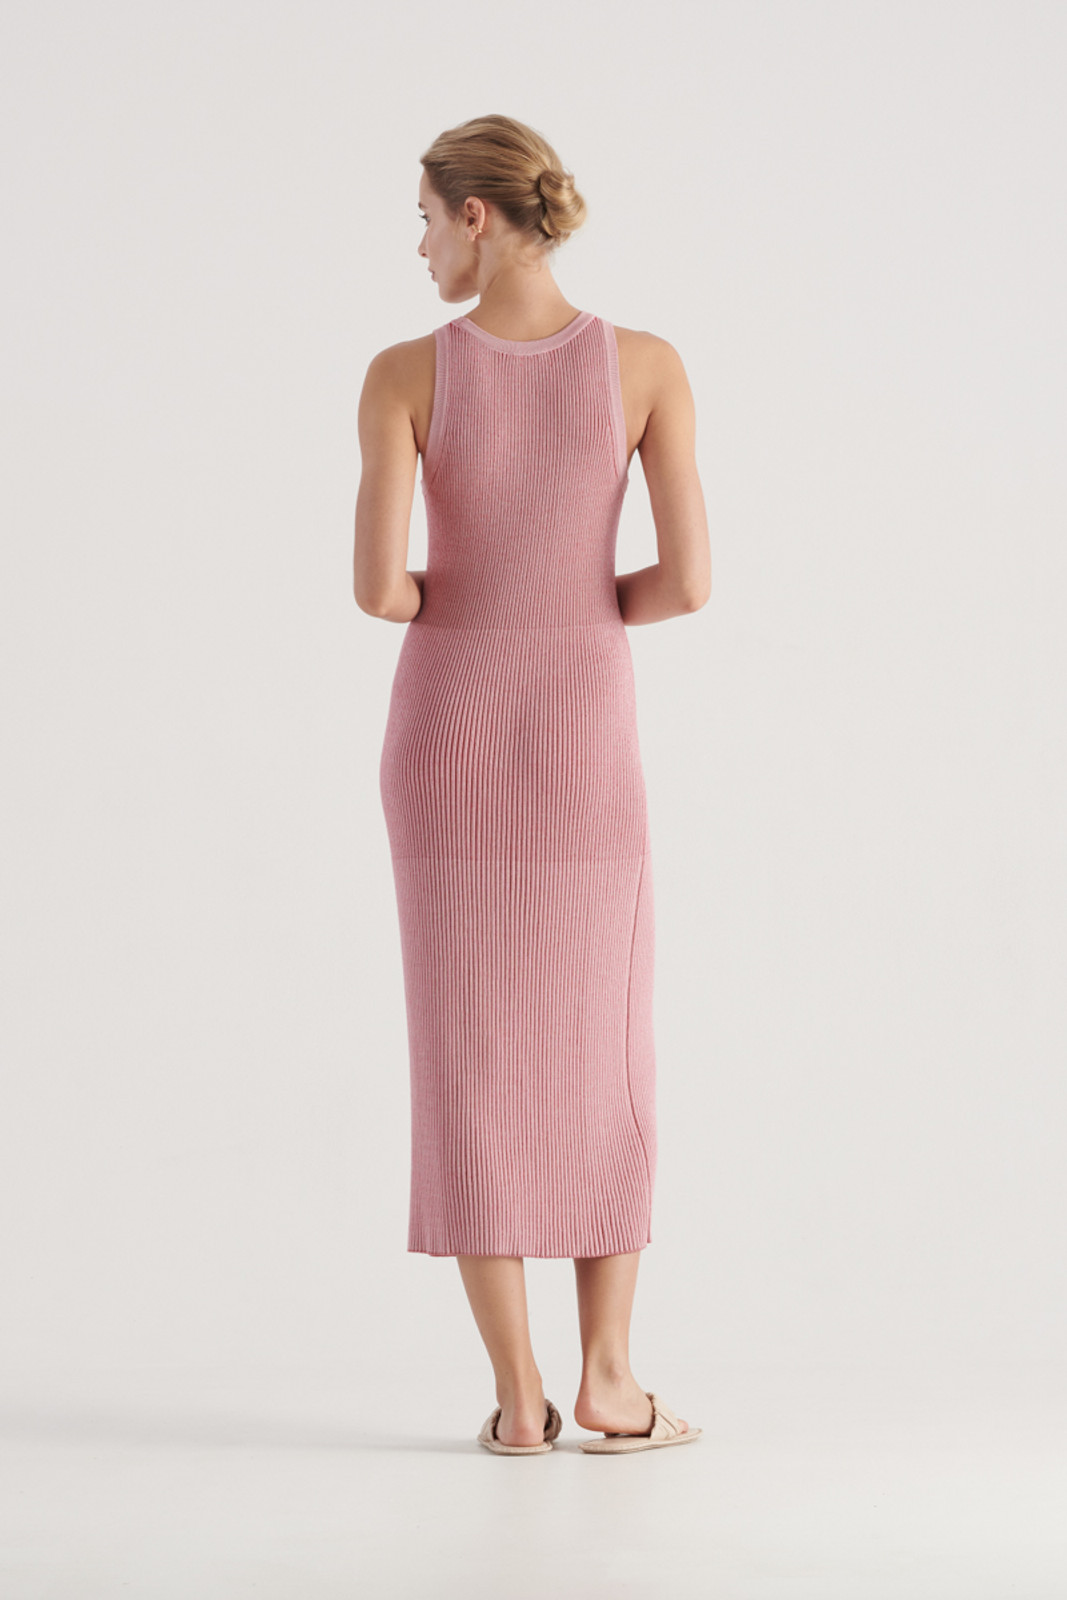 Elka Collective WomensStevie Knit Dress Pink/Red  3